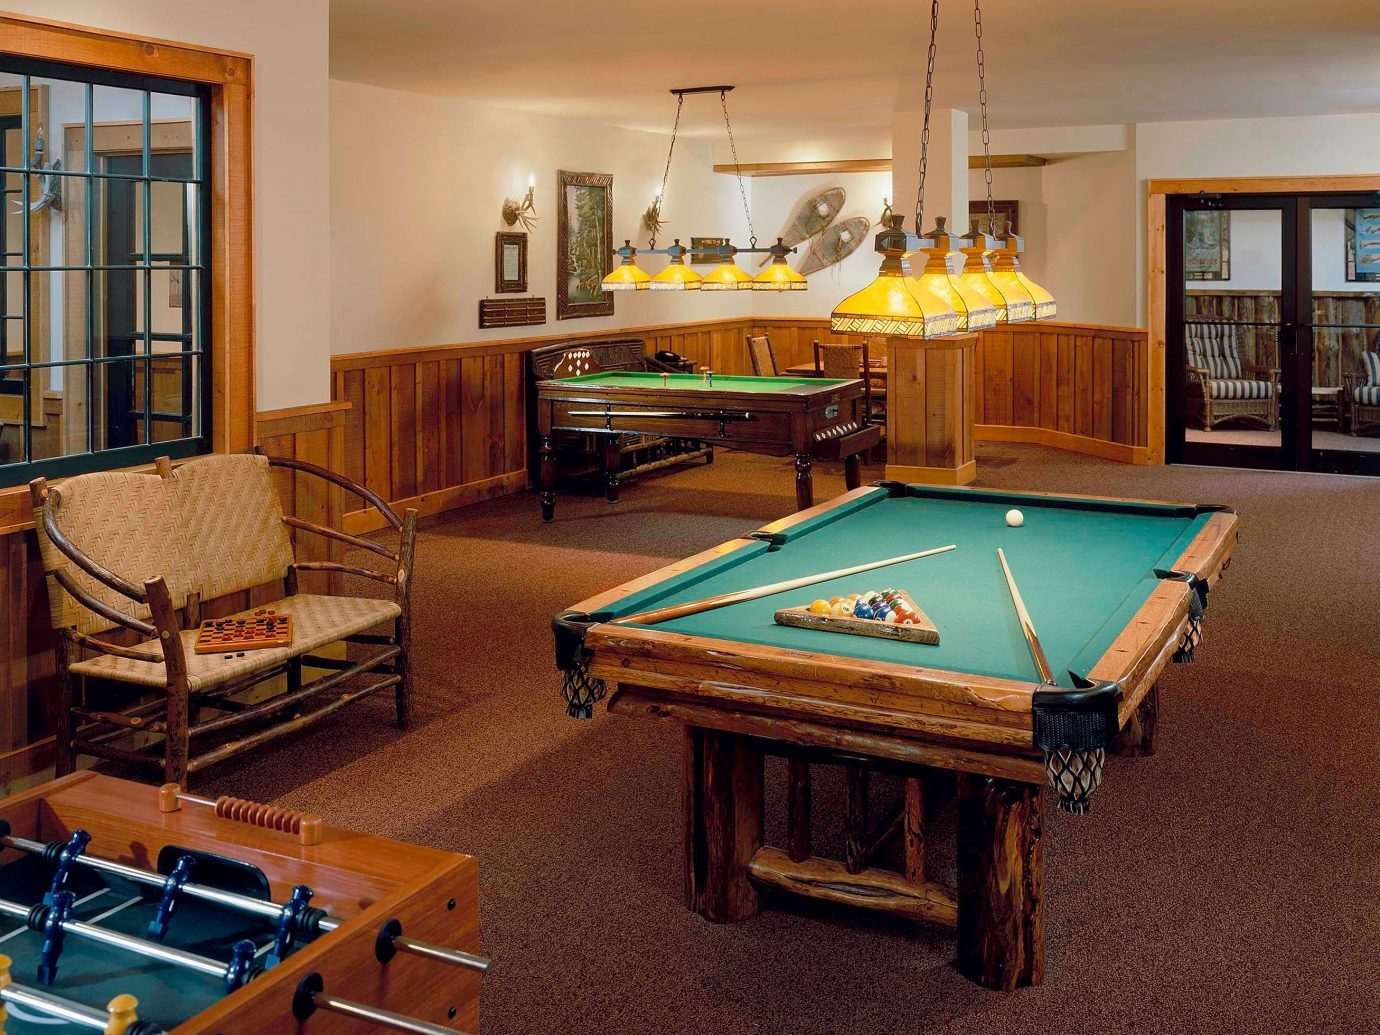 Billard room at The Whiteface Lodge